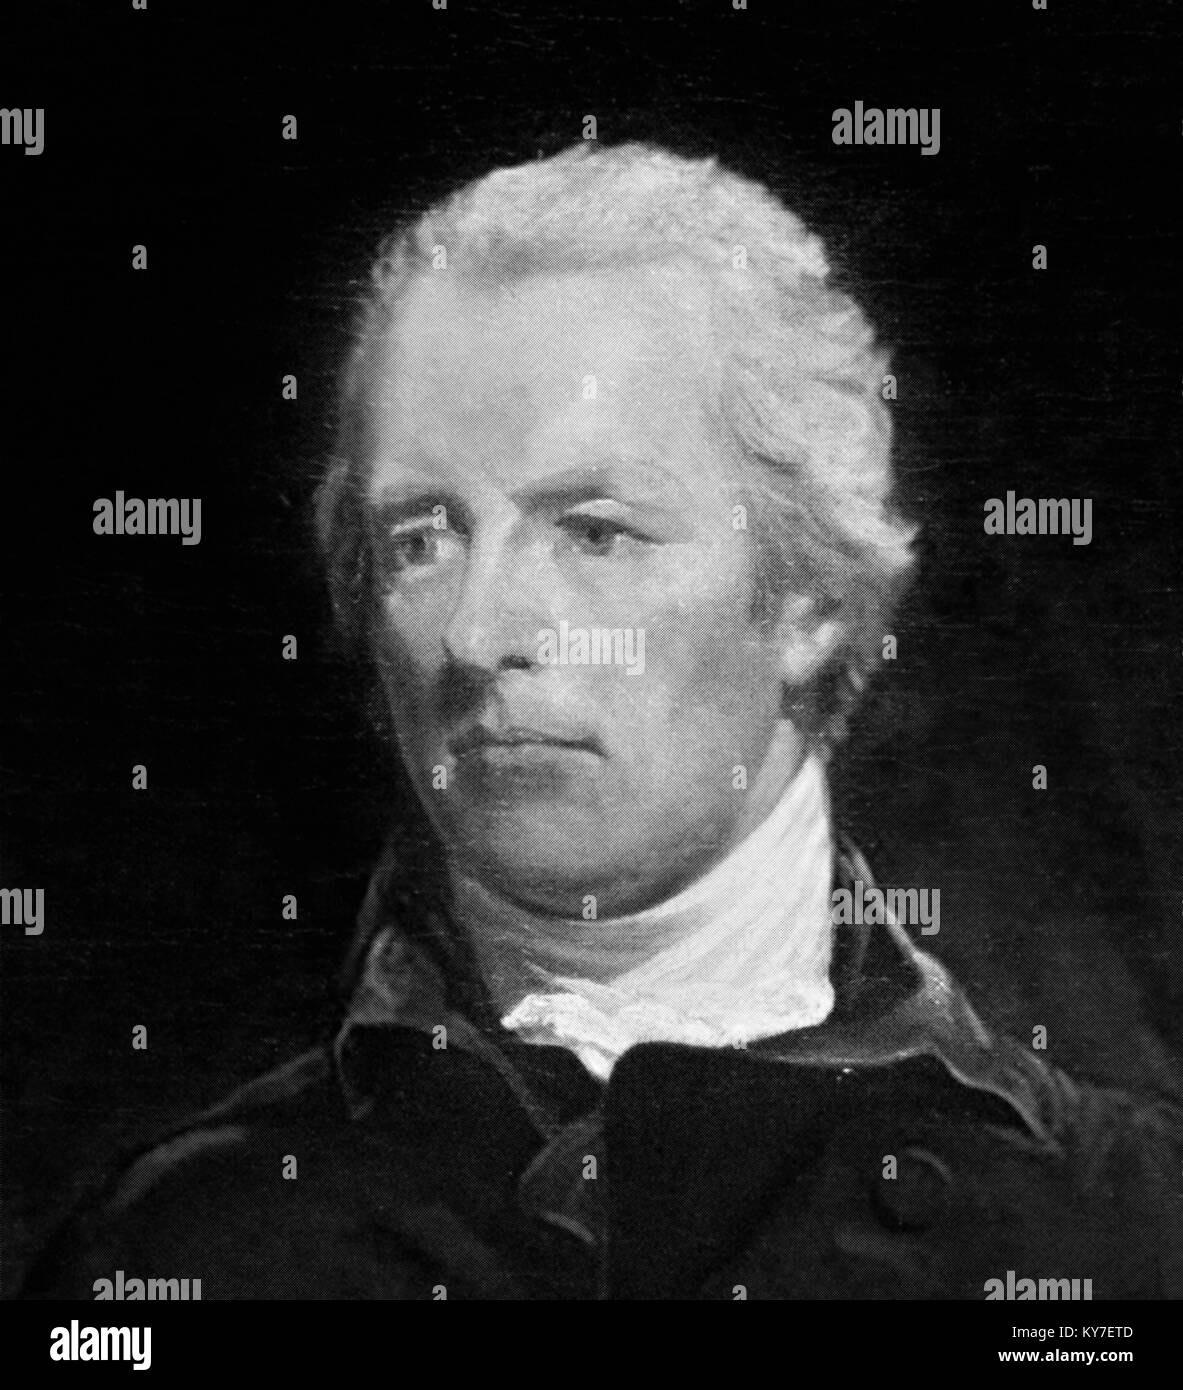 William Pitt the Younger (1759-1806), British Prime Minister at the end of the 18th and beginning of 19th centuries. - Stock Image